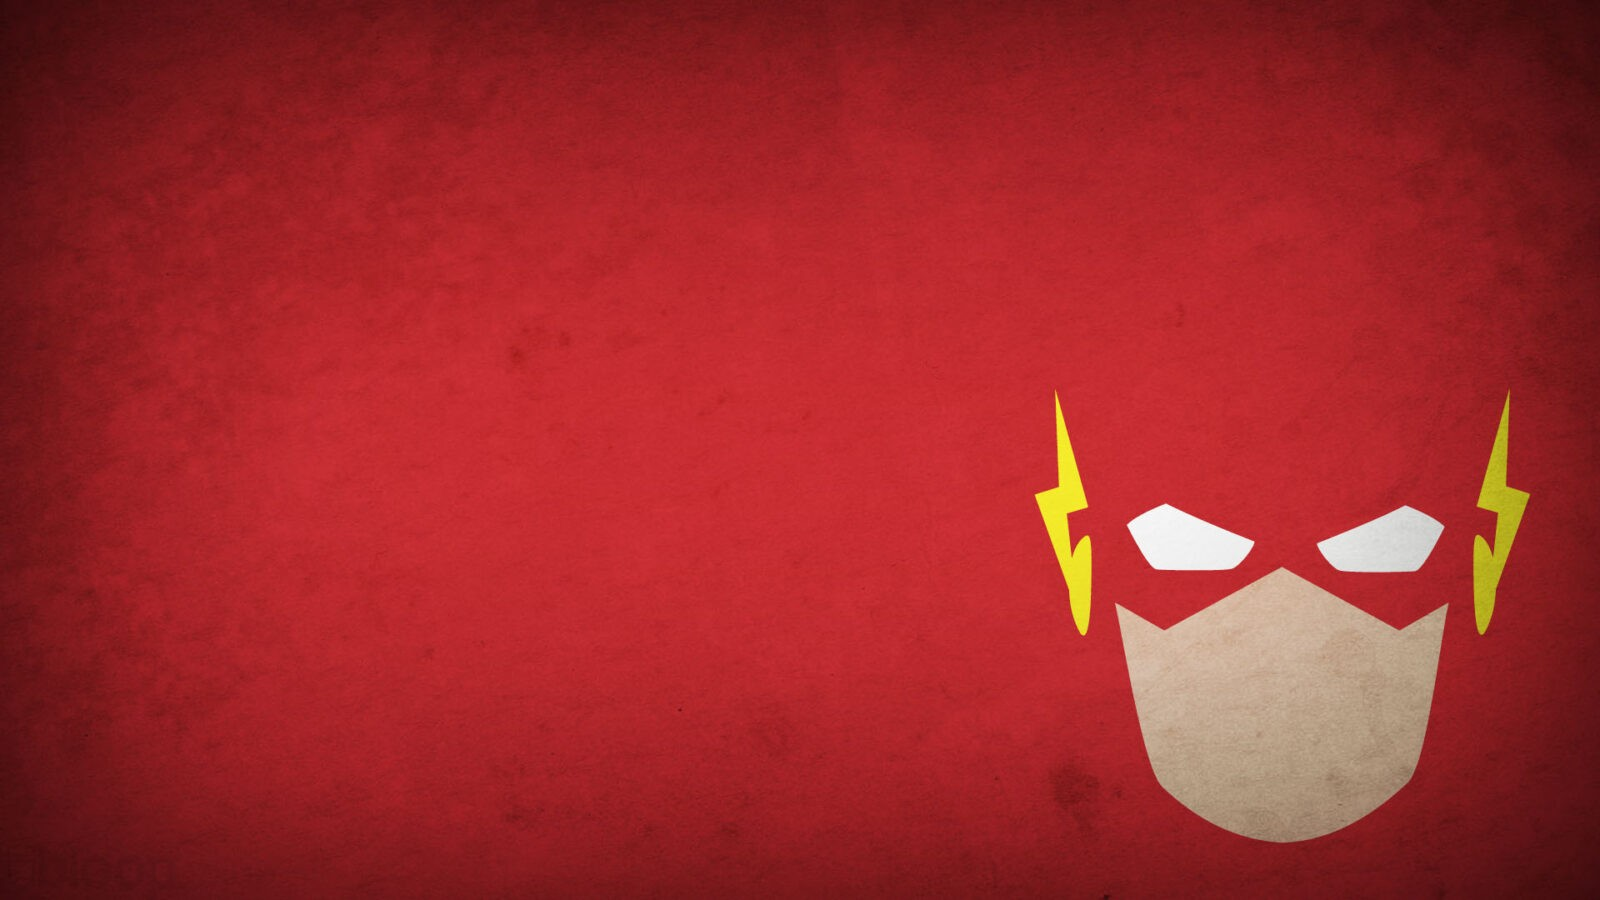 Cars For Free >> 9+ The Flash logo HD wallpapers free download